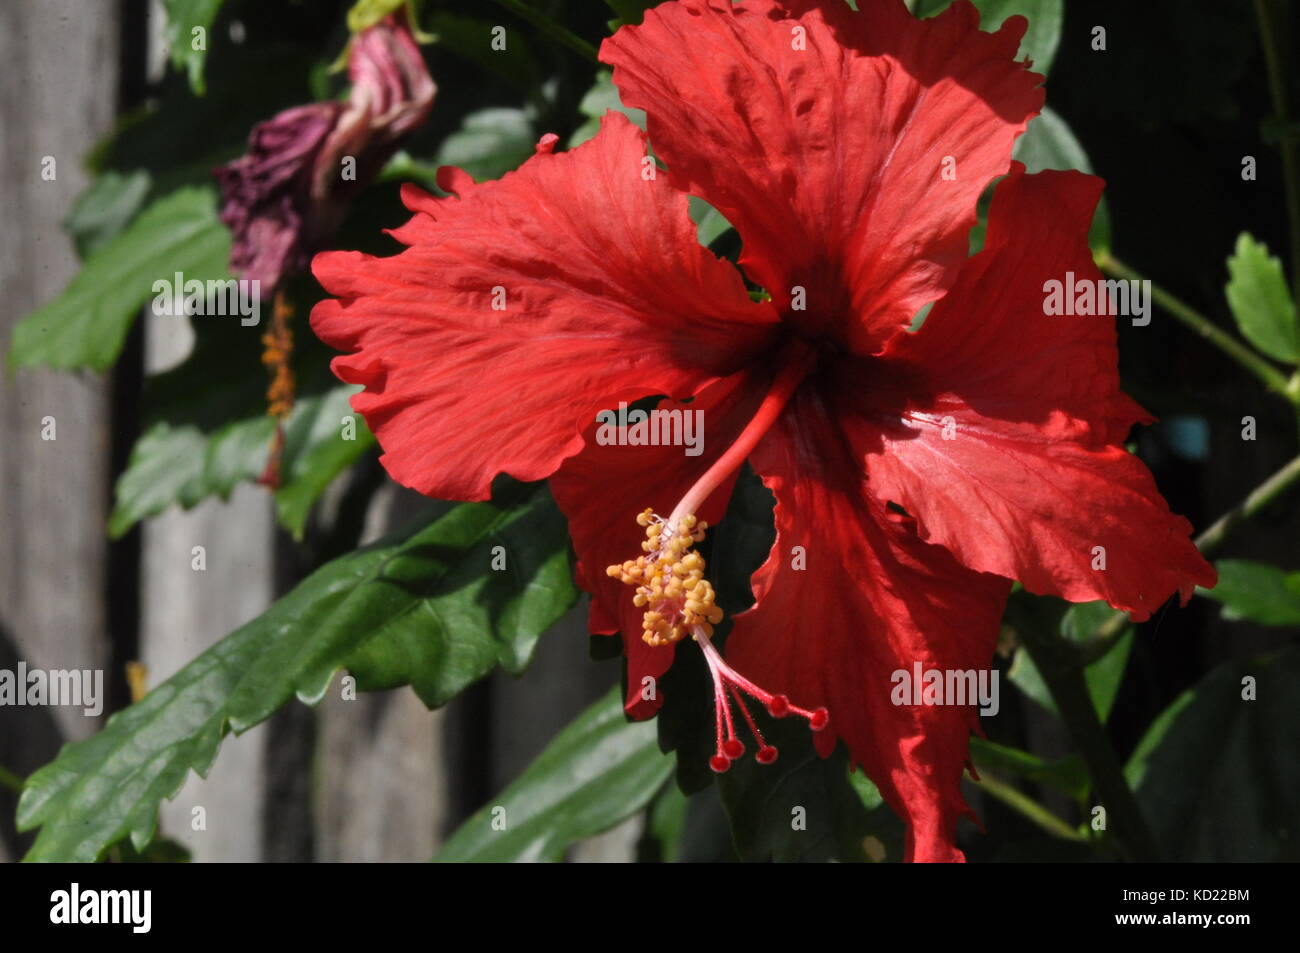 Hibiscus flowers townsville queensland australia stock photo hibiscus flowers townsville queensland australia izmirmasajfo